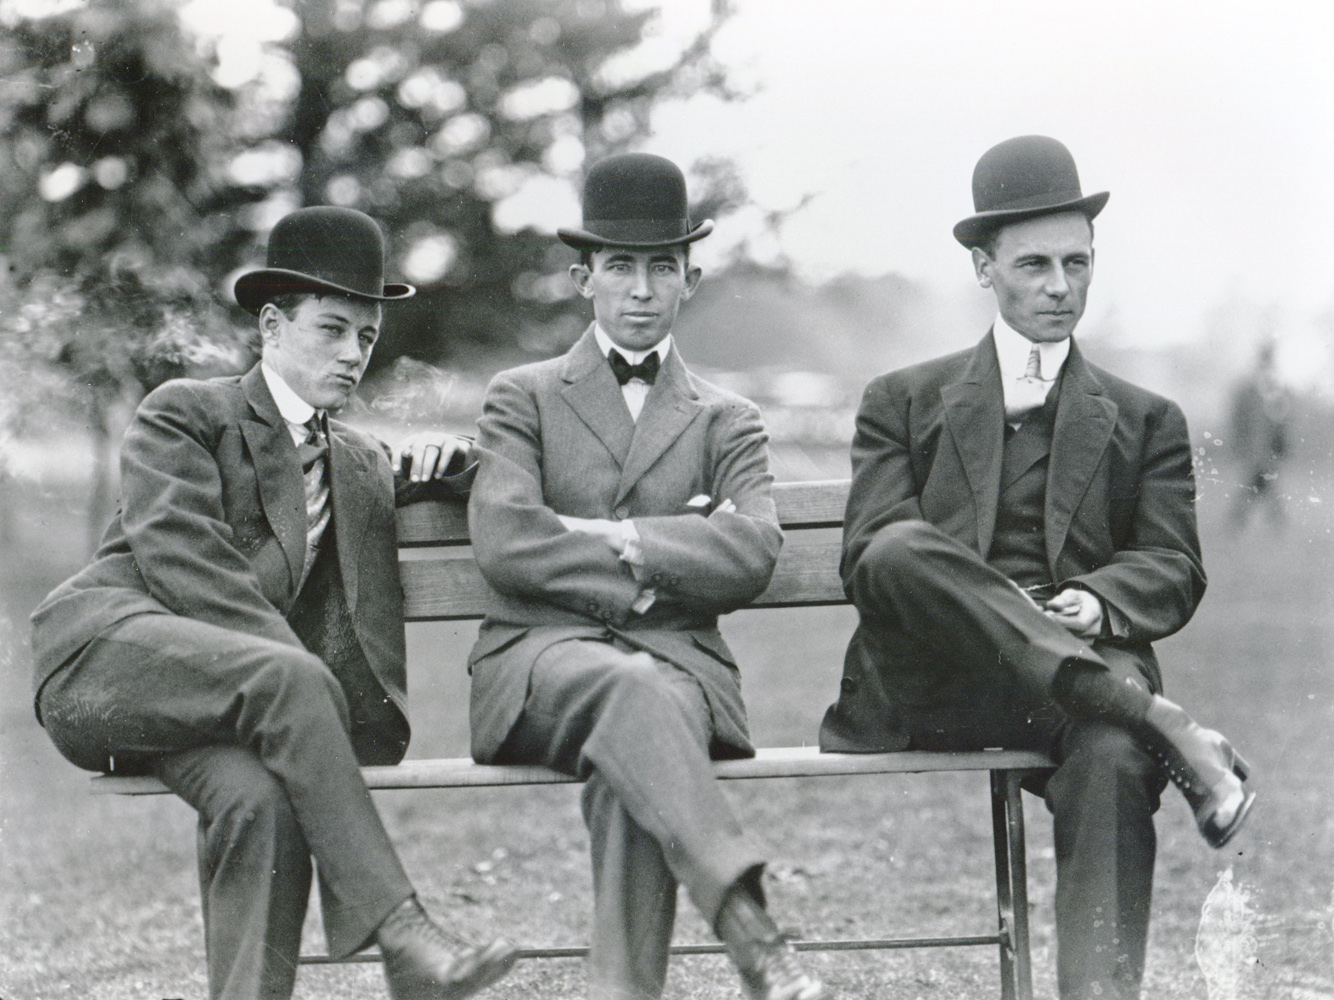 Frank O'Neill, Tommy Burns, and Willie Shaw (from left to right) (Keeenland Library Cook Collection/Museum Collection)